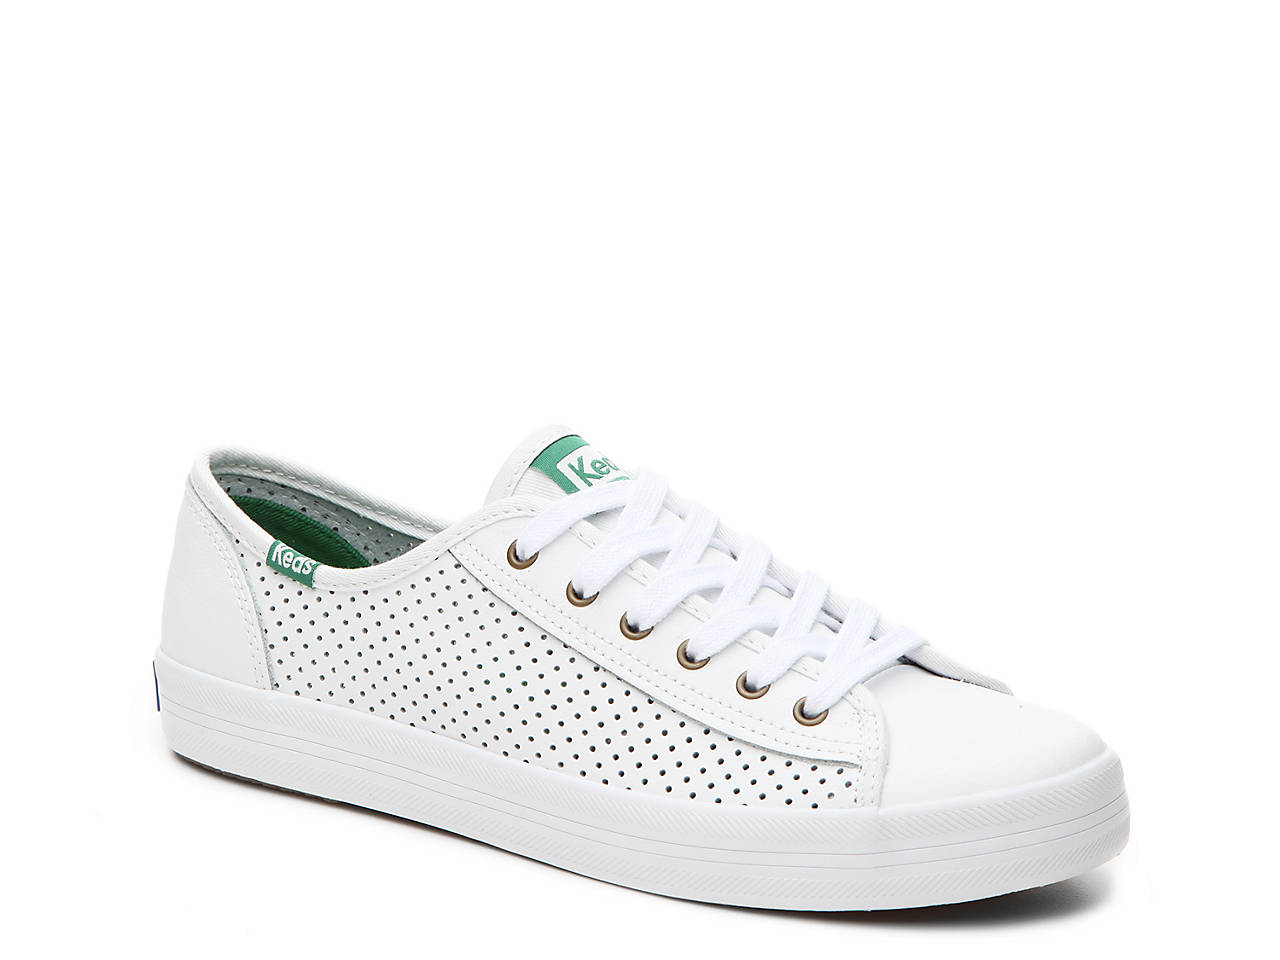 Keds White Shoes Price